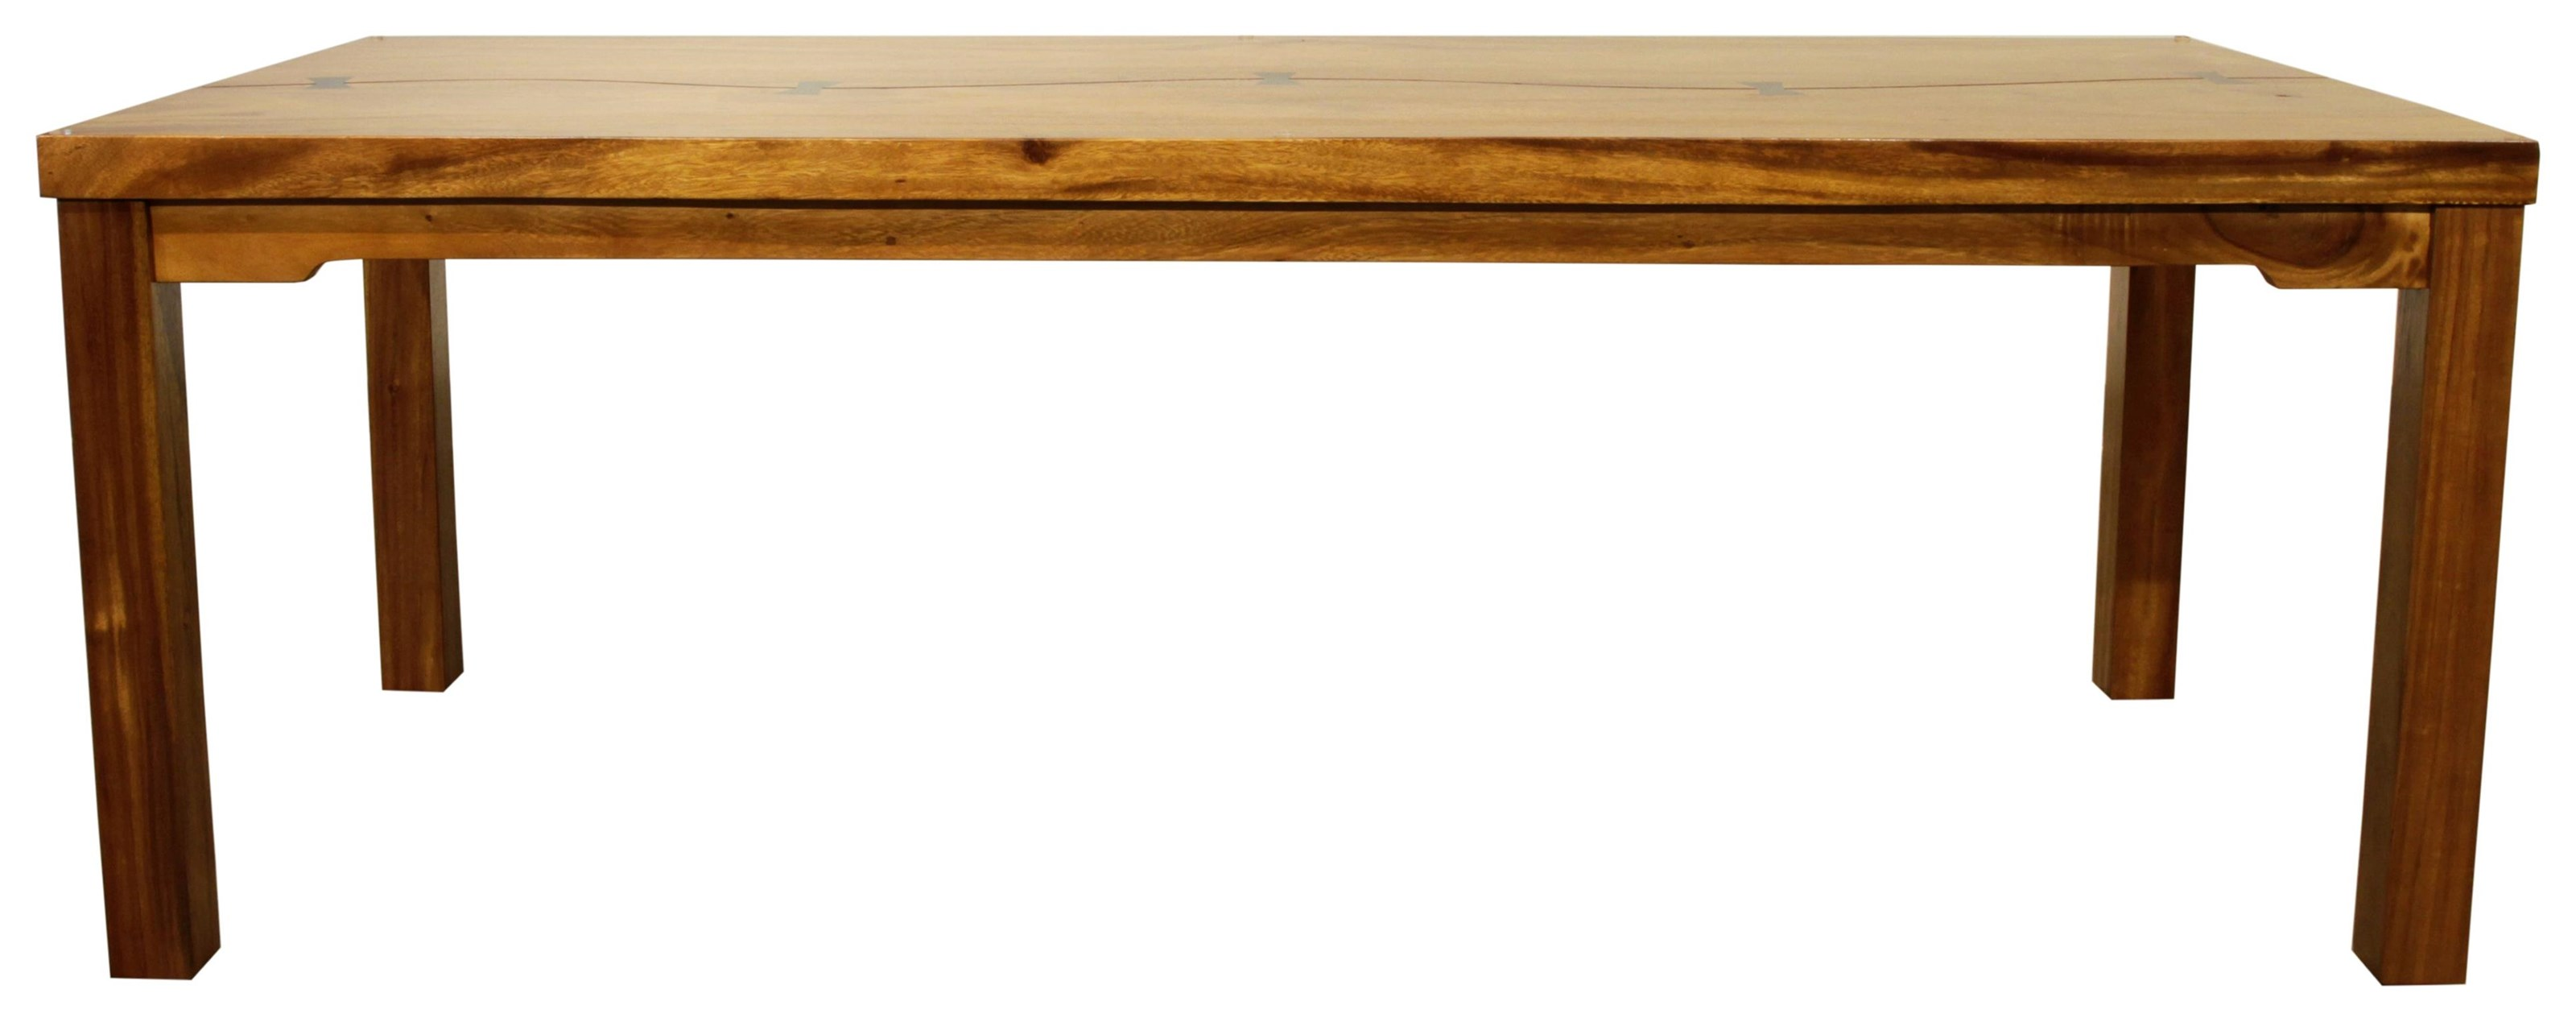 Napili Dining Table by Jamieson Import Services, Inc. at HomeWorld Furniture